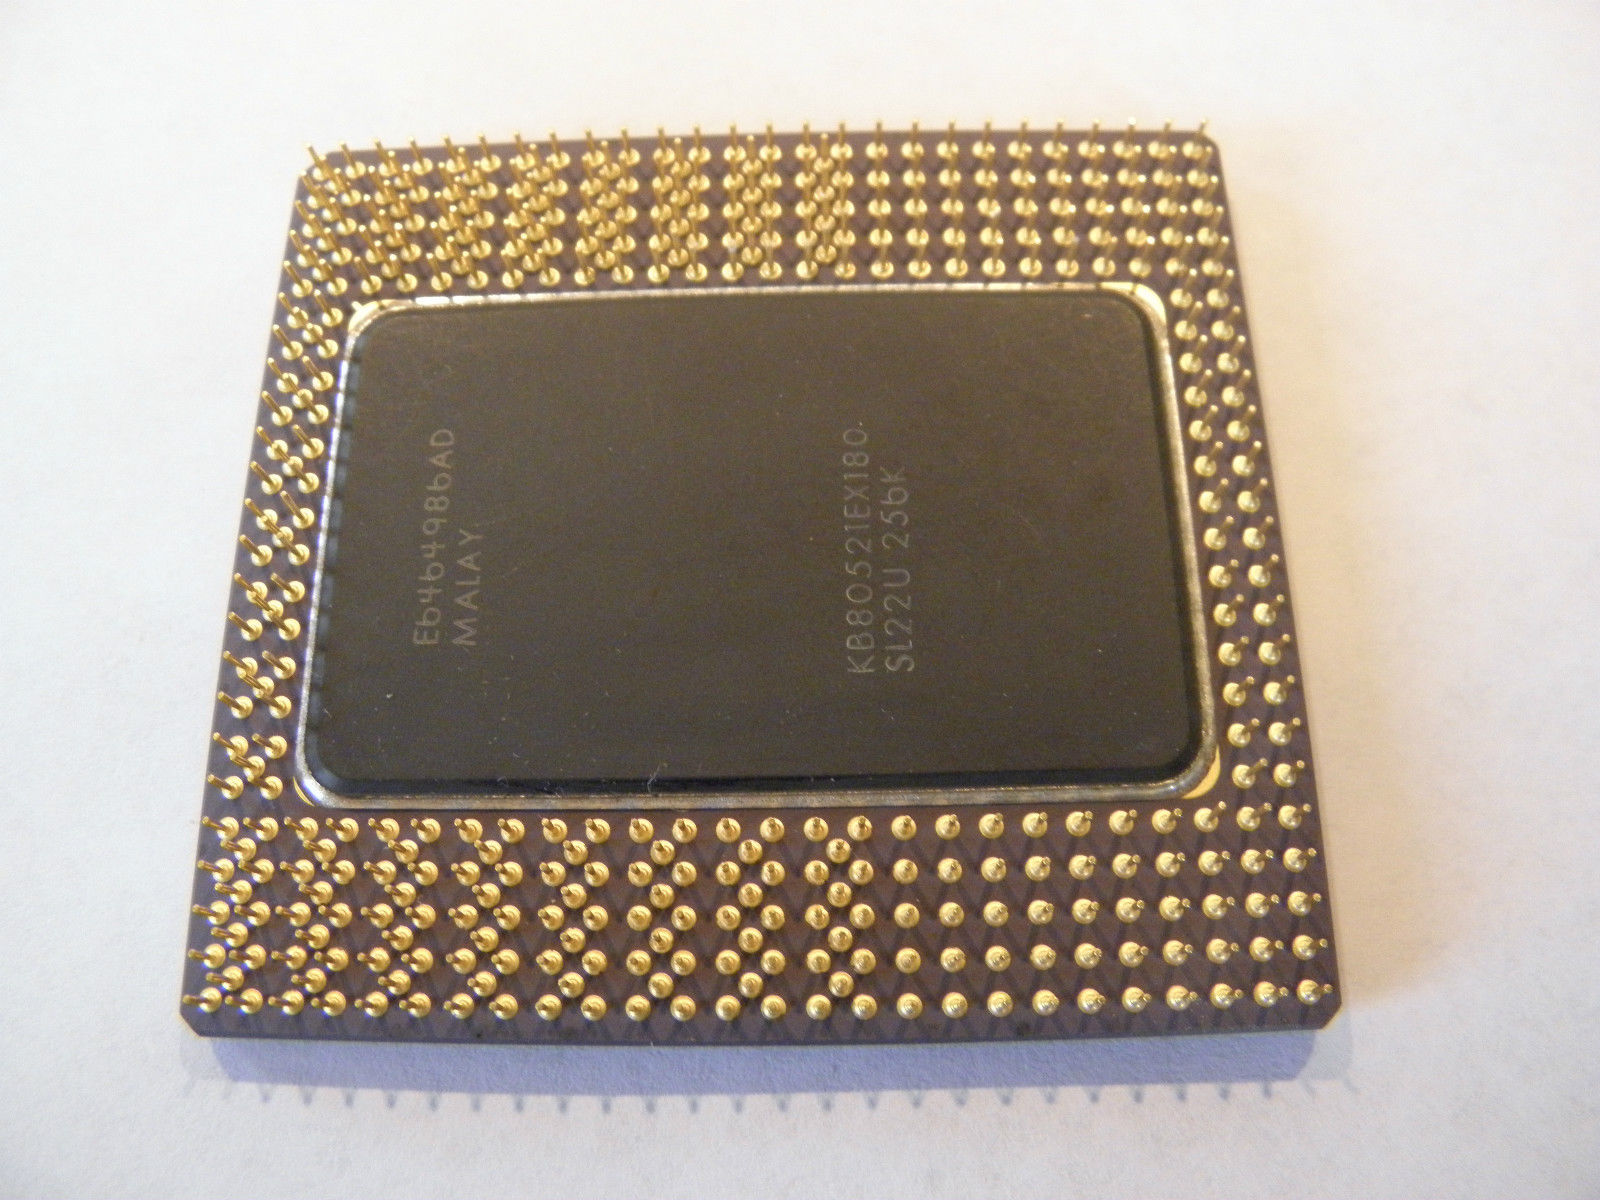 CERAMIC INTEL i960 CPU, GOLD PLATED PINS for GOLD Recovery & Collector